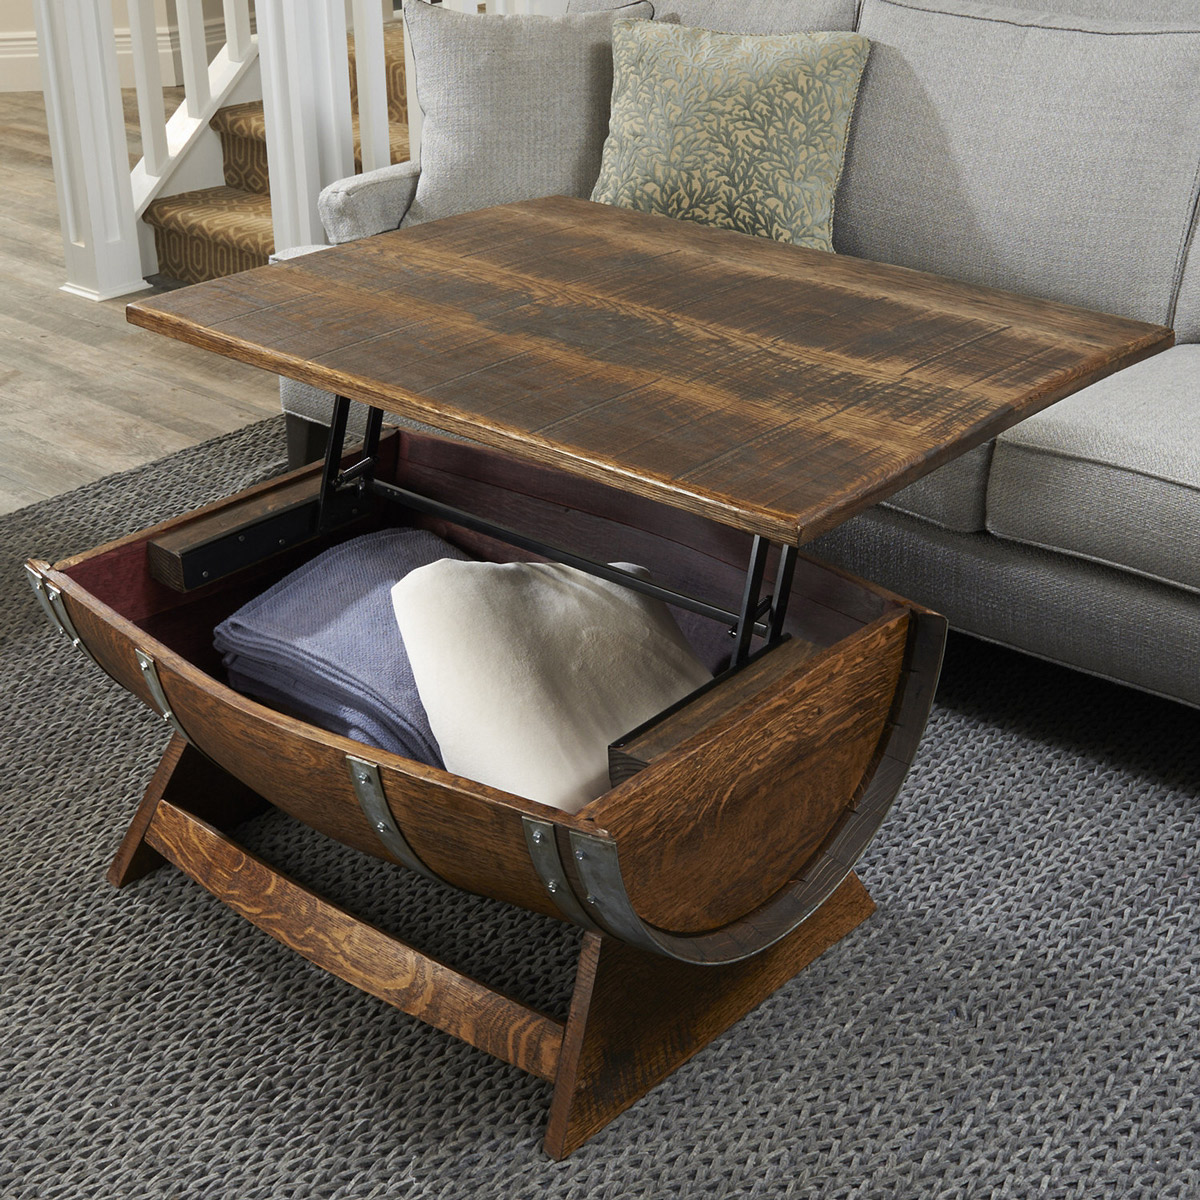 lift top reclaimed wine barrel coffee table accent device charging end dark cherry side drawer cabinet raton furniture square farmhouse black glass hawthorne industrial style tall